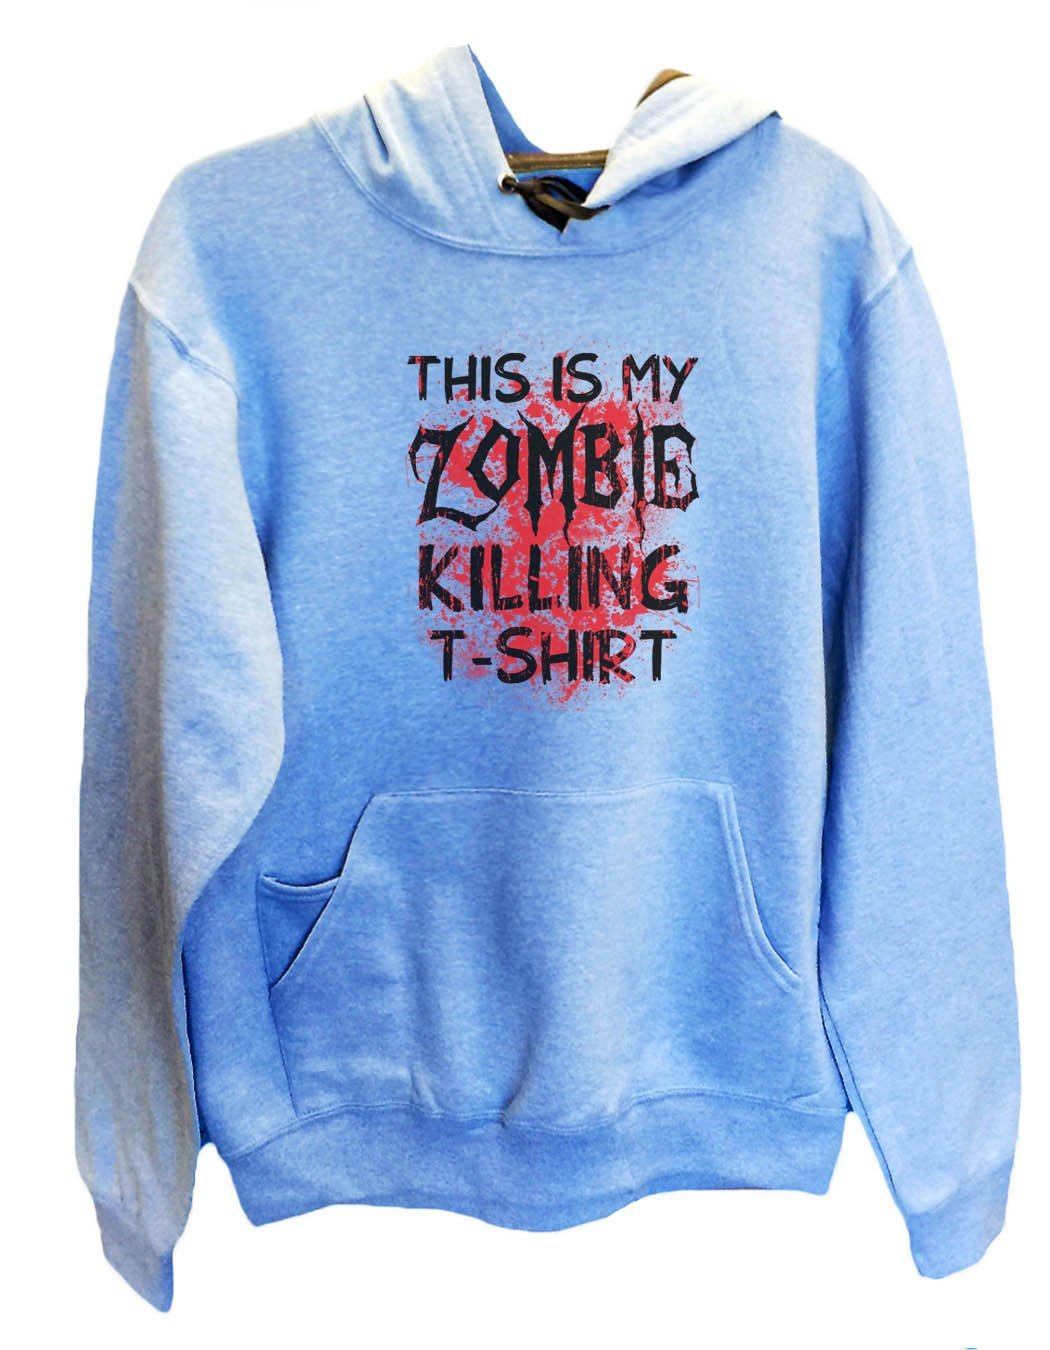 UNISEX HOODIE - This Is My Zombie Killing T-Shirt - FUNNY MENS AND WOMENS HOODED SWEATSHIRTS - 2312 Funny Shirt